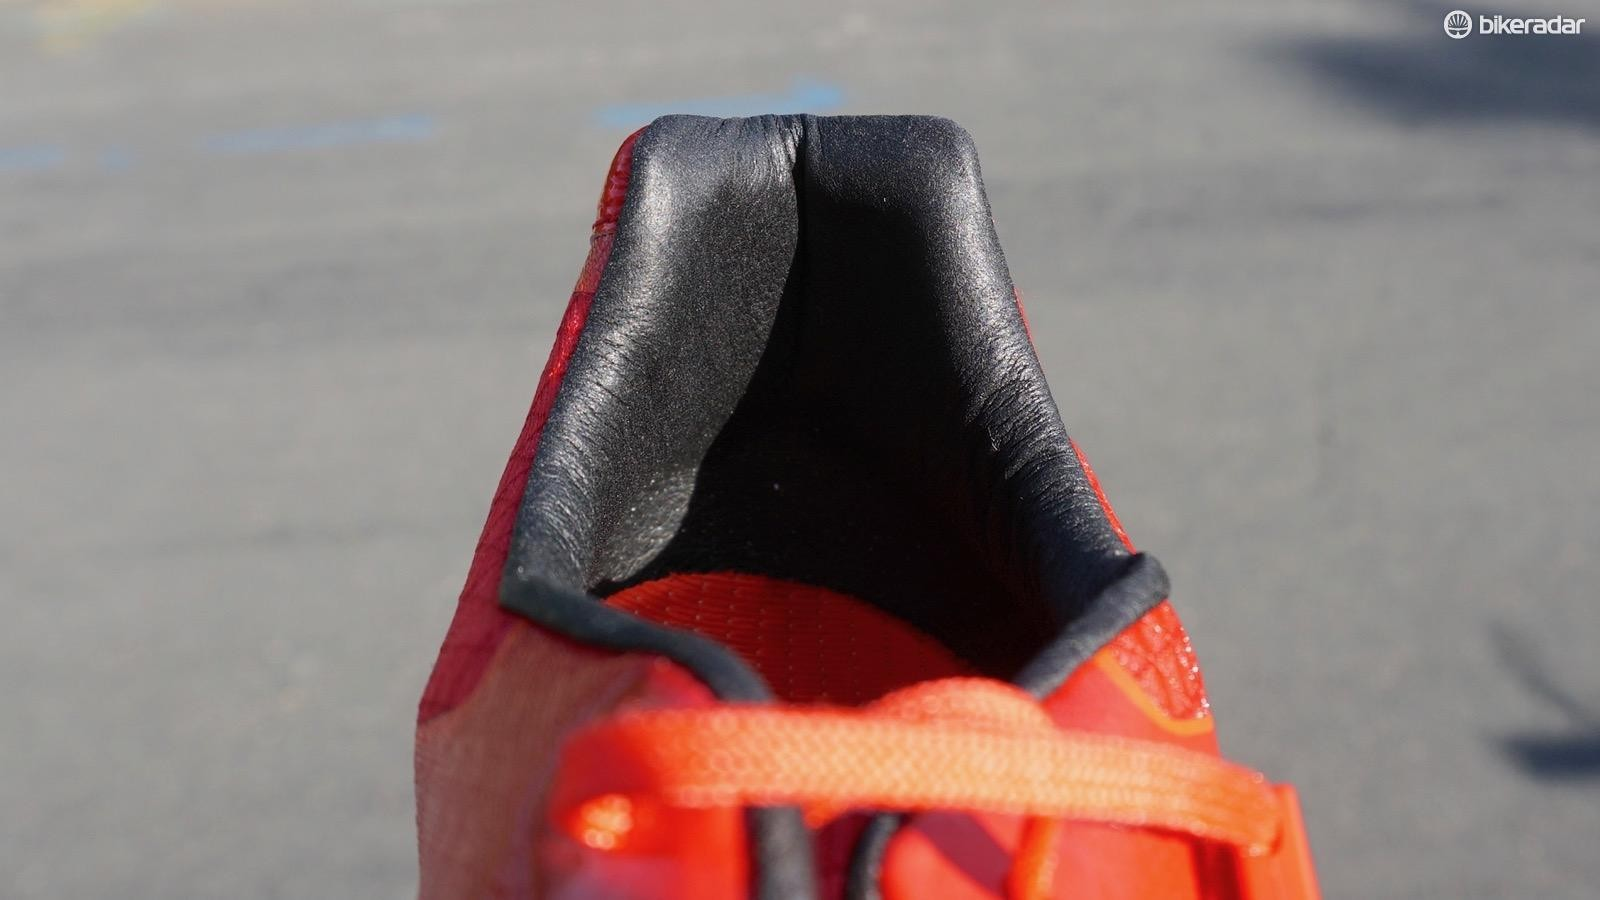 The padded heel counter is comfortable and malleable. Some riders may like it; others may prefer something with a more rigid structure